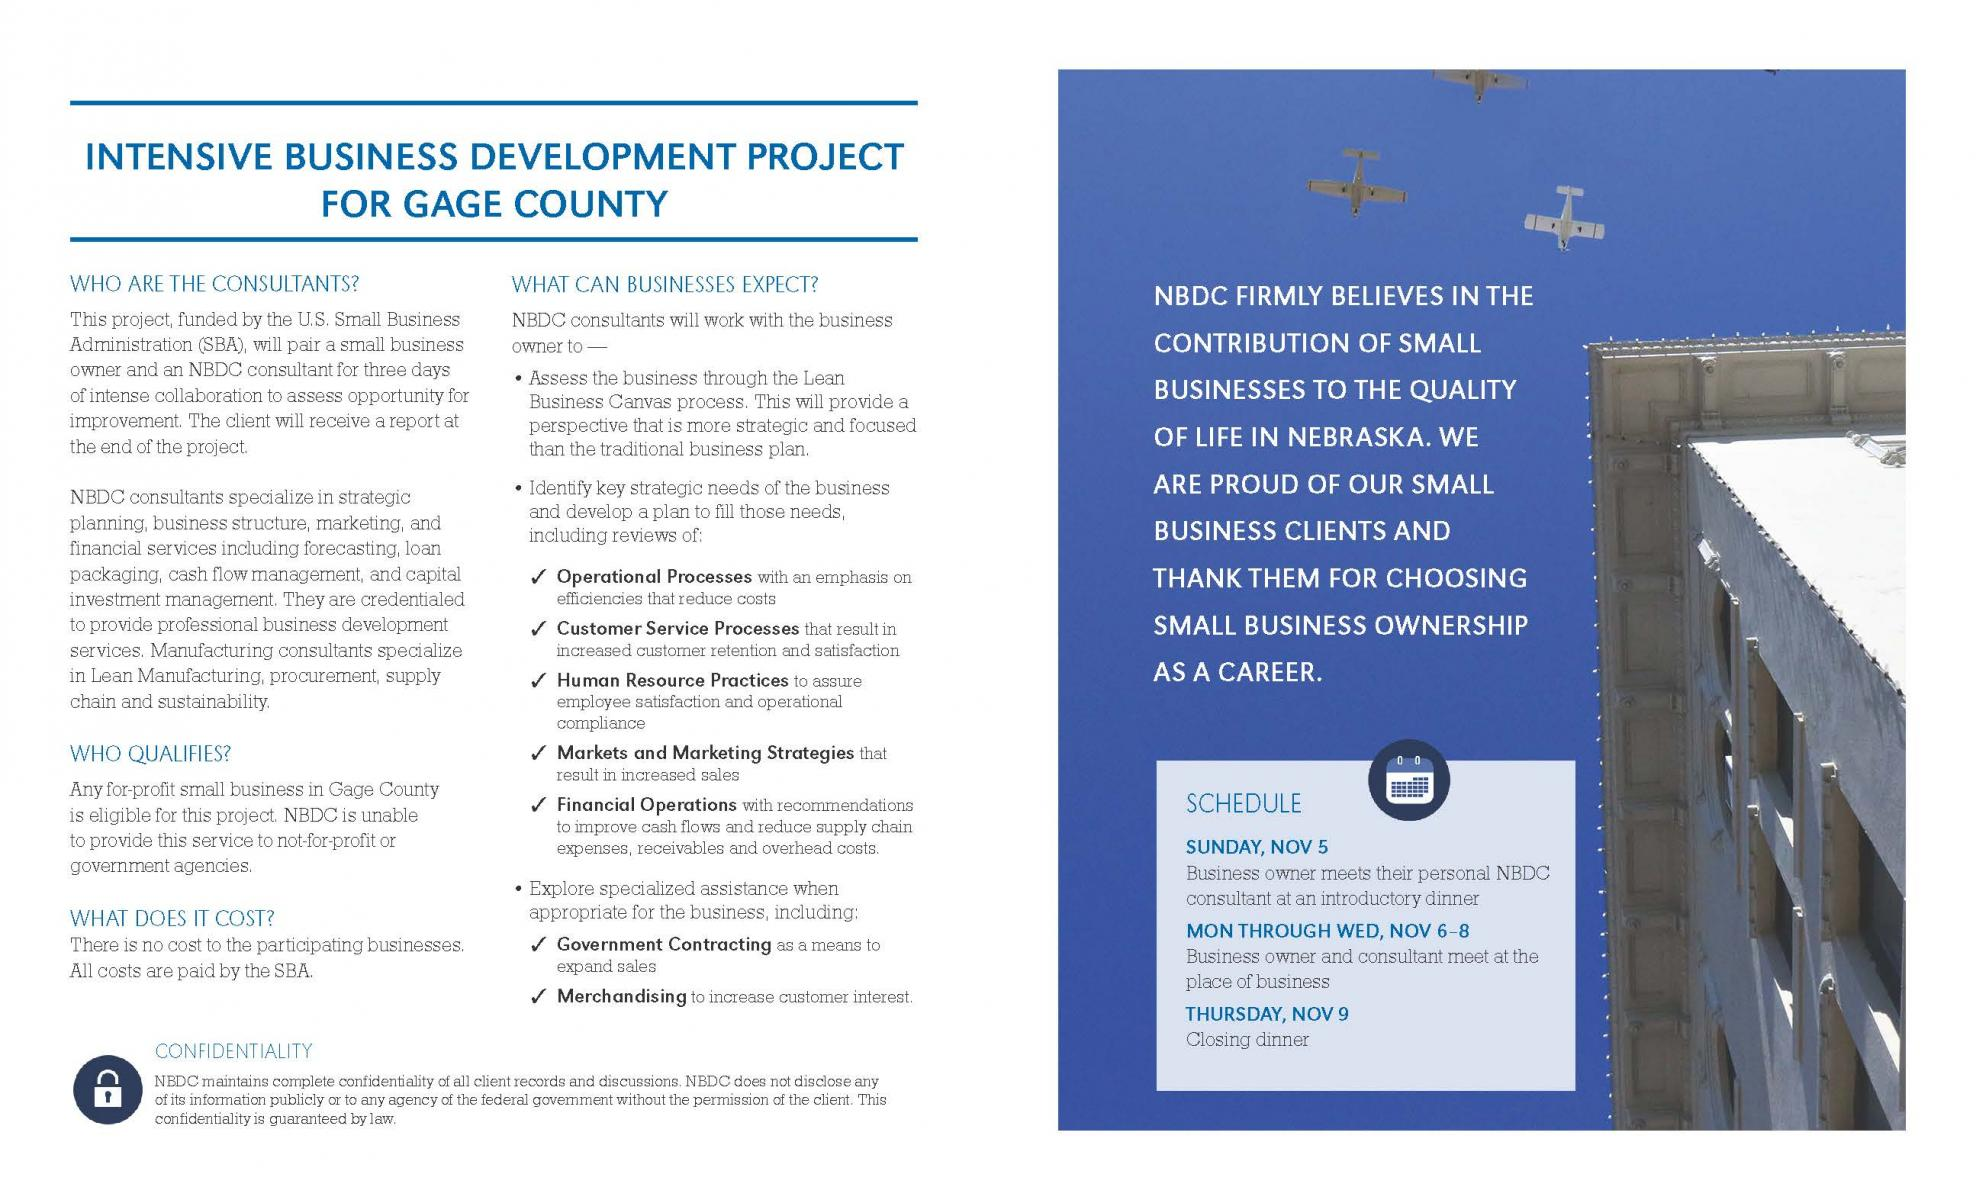 NGage Teaming Up with NBDC for Business Development Project Main Photo